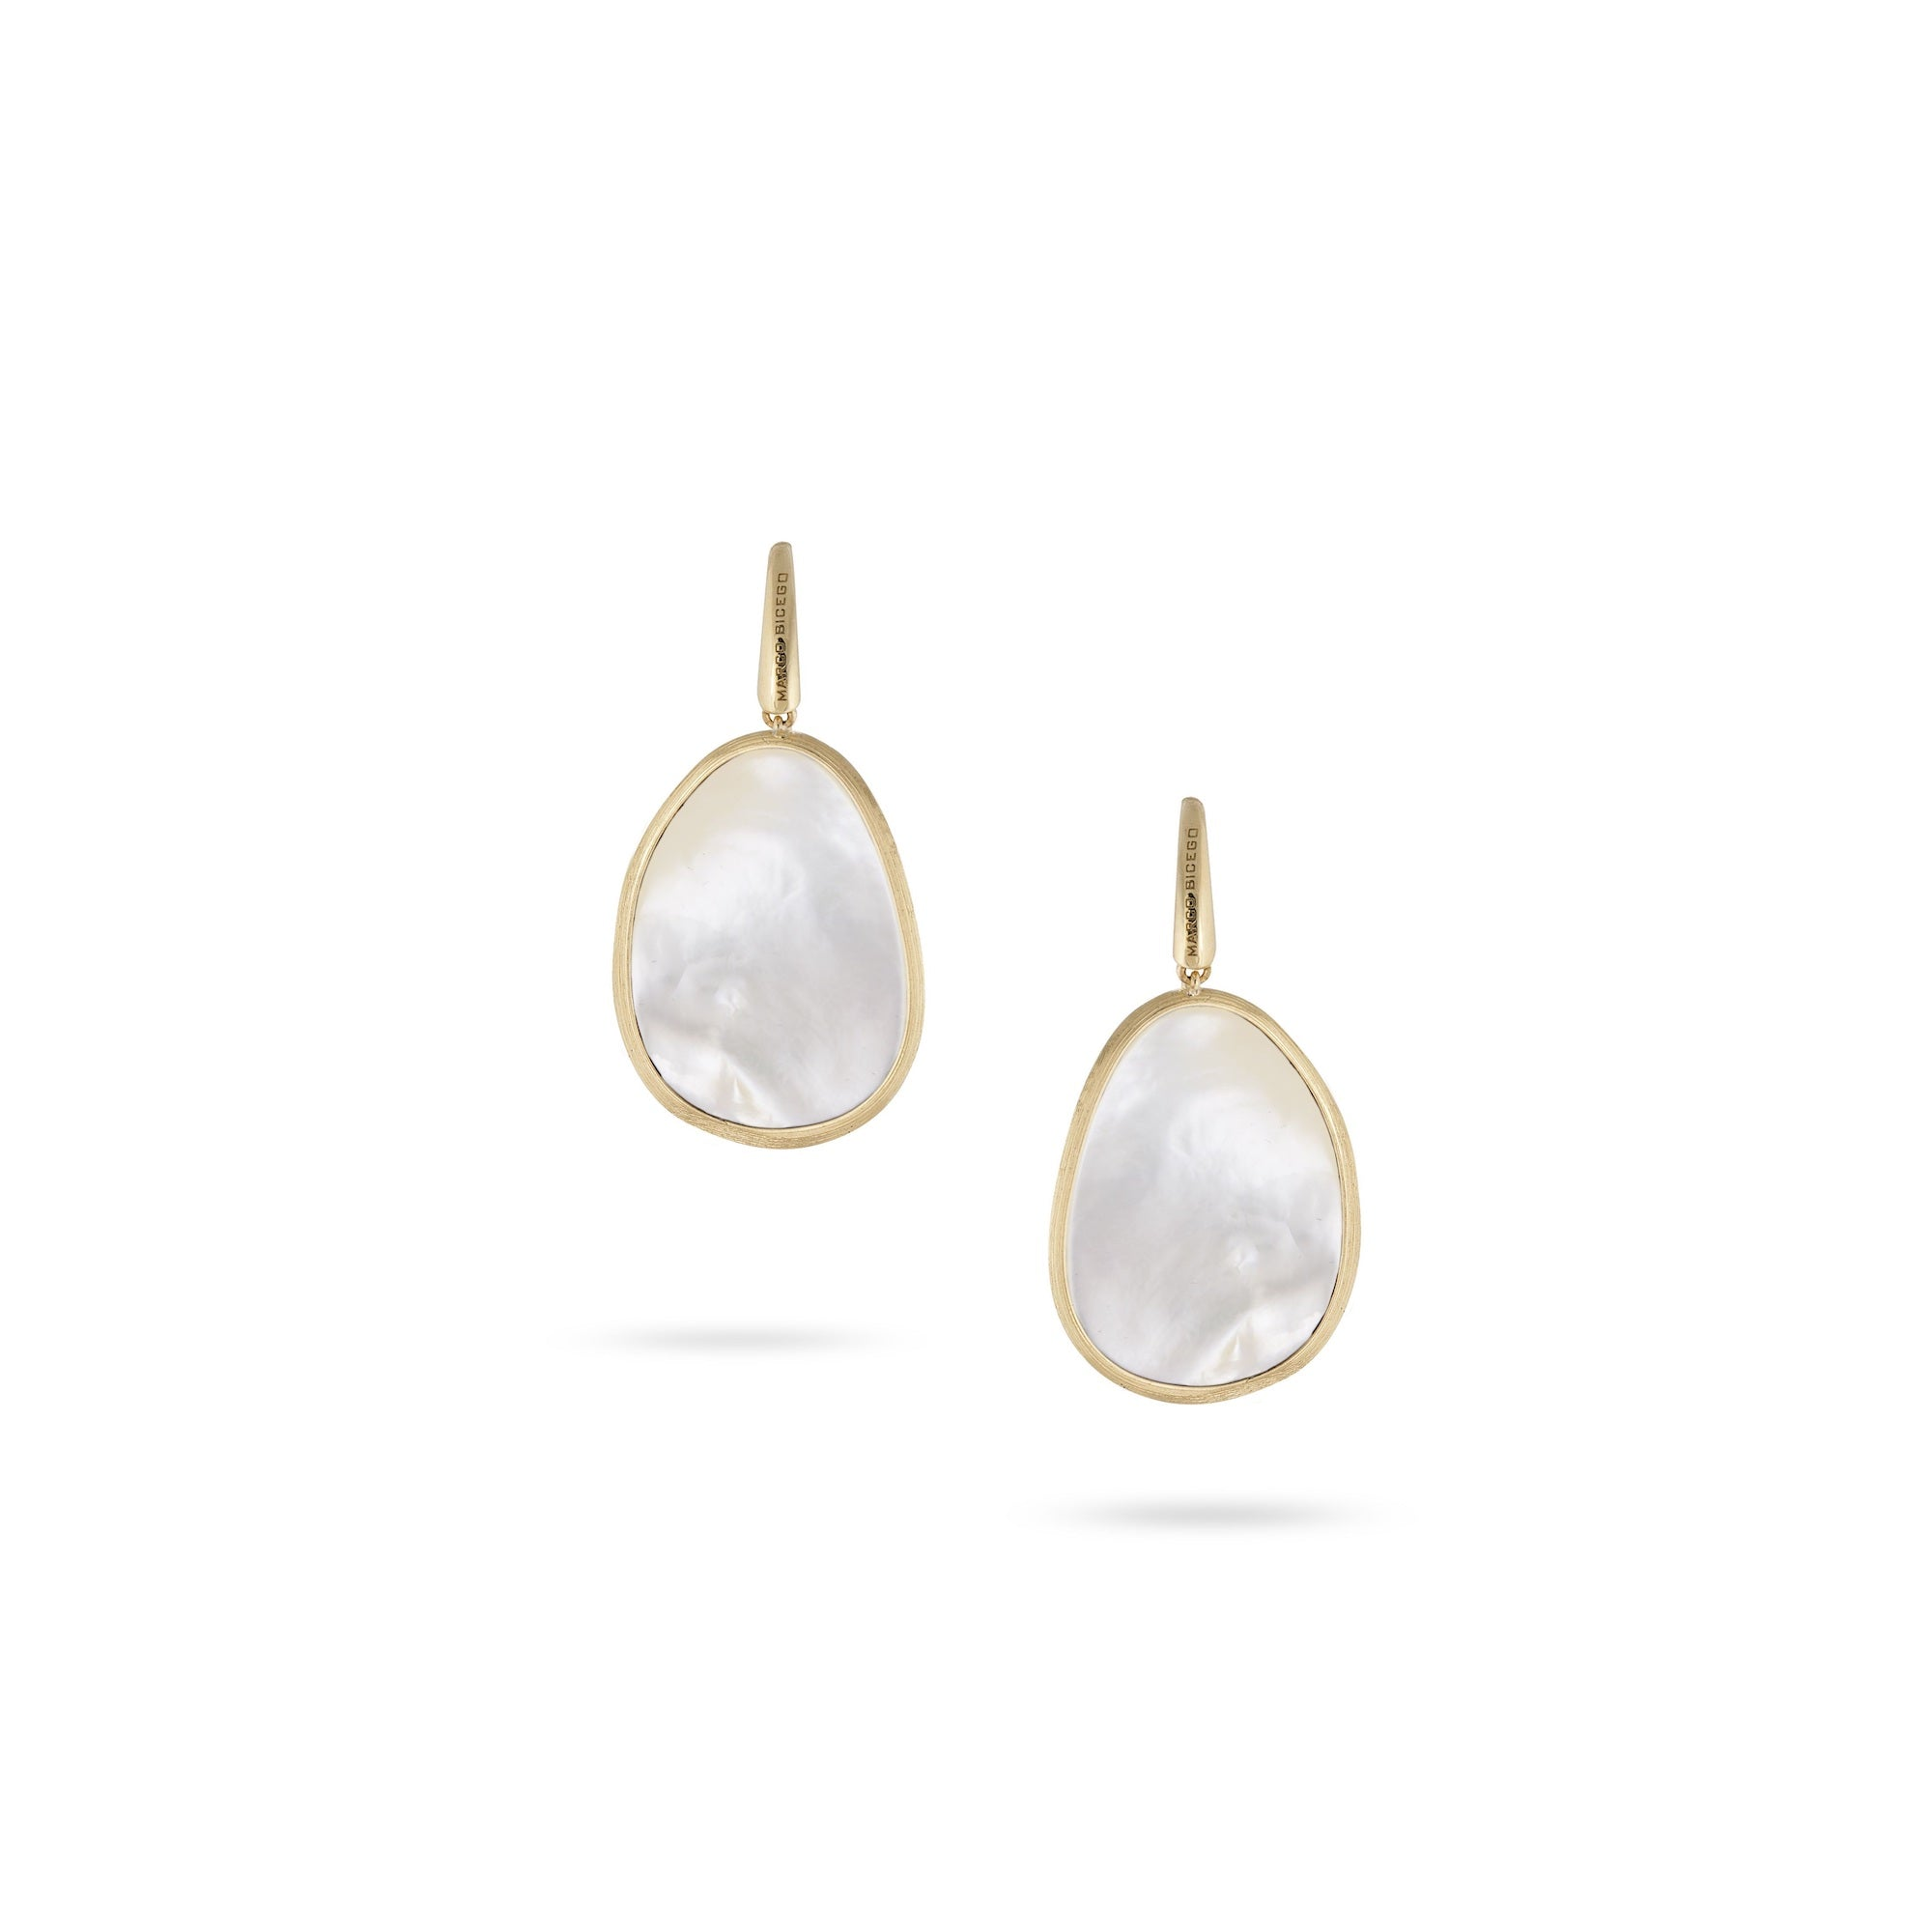 18K Yellow Gold White Mother of Pearl Drop Earrings